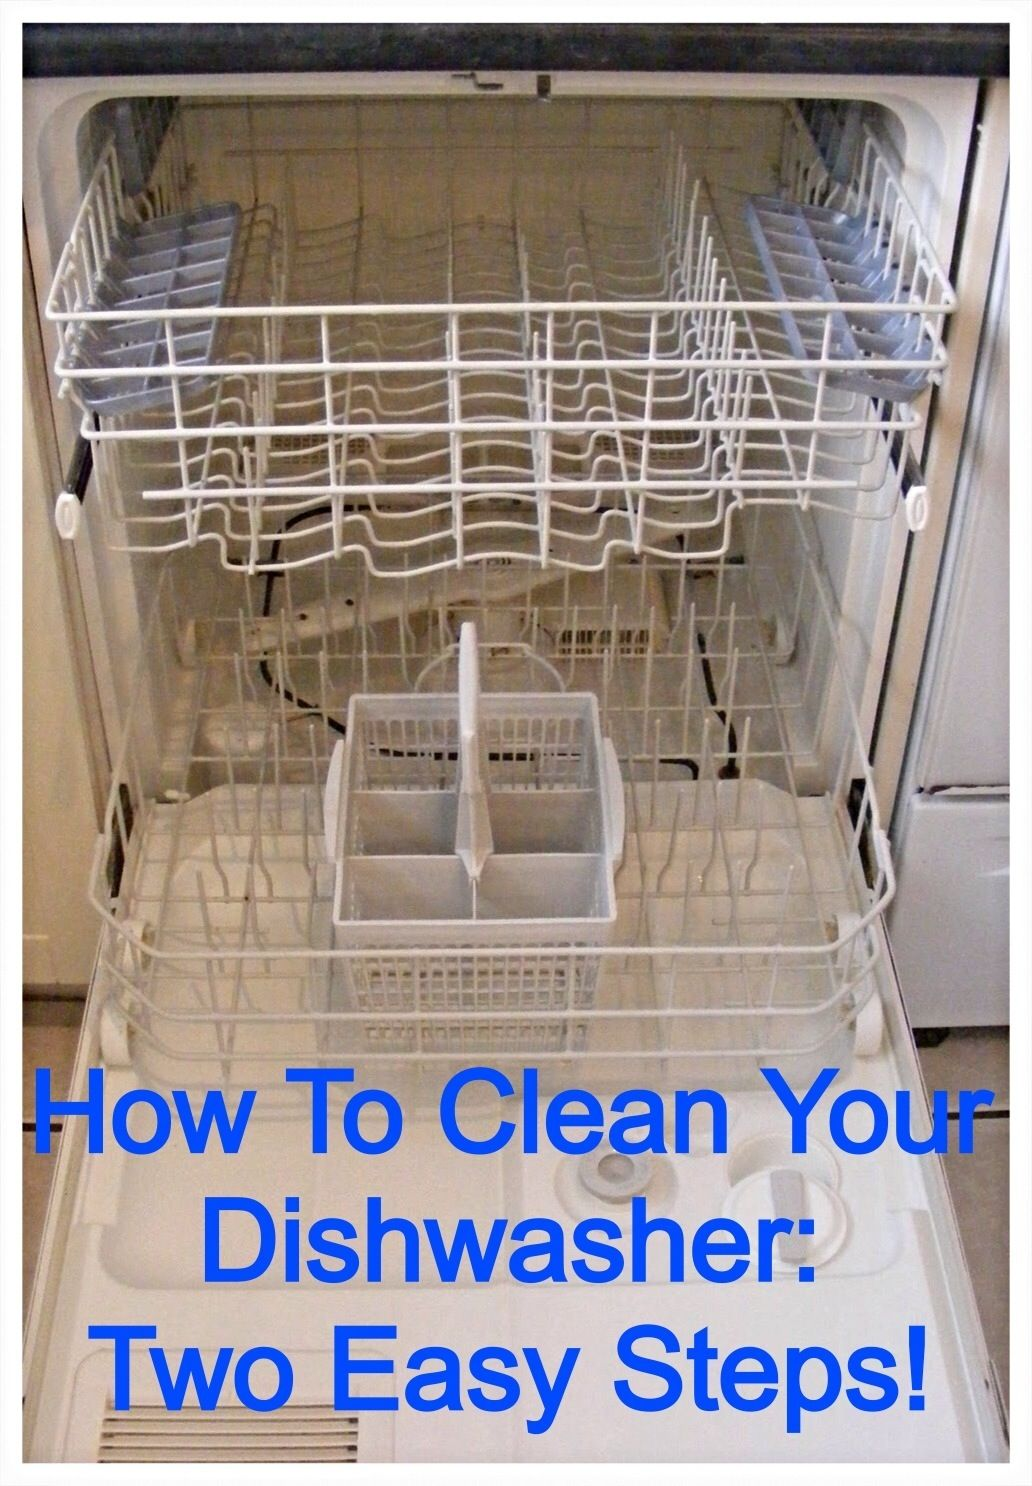 How To Clean Your Dishwasher Cleaning Your Dishwasher Clean Dishwasher Cleaning Hacks